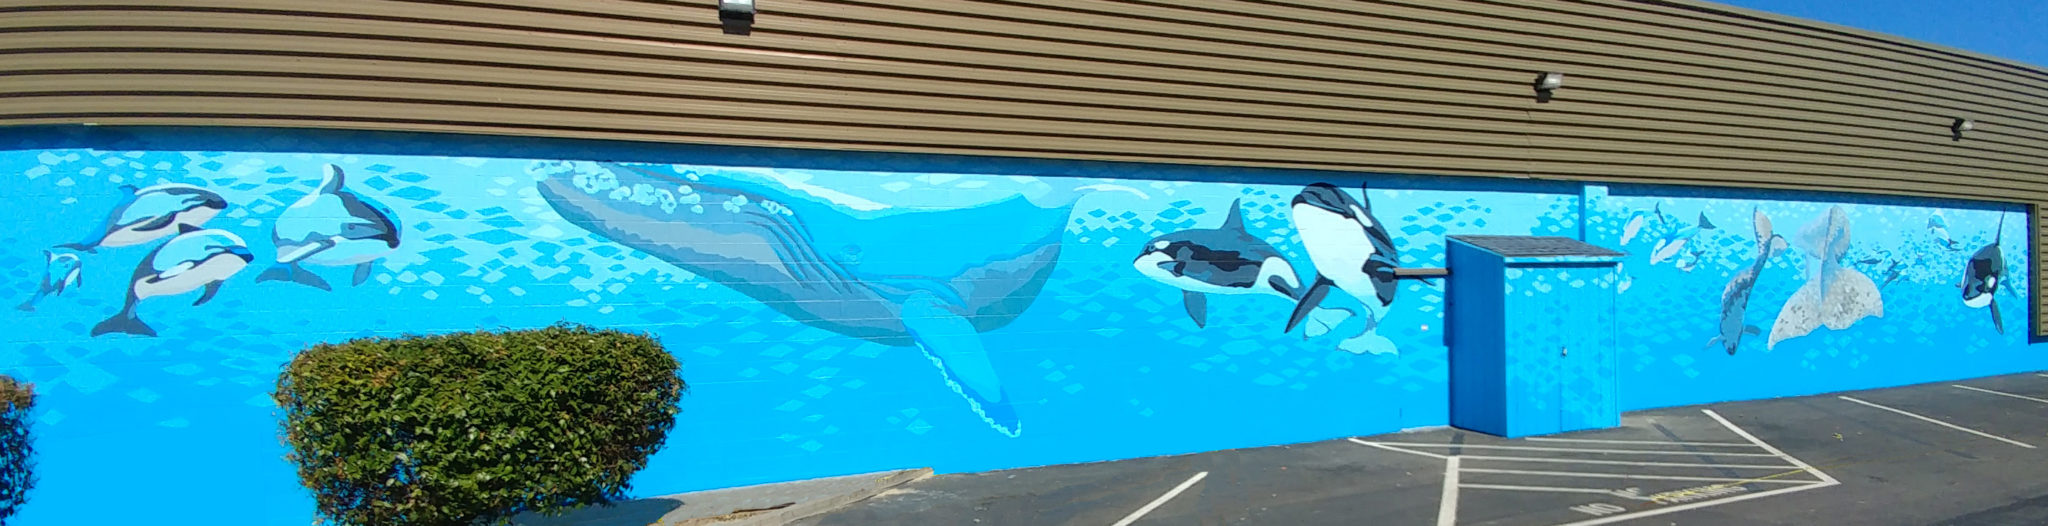 Laurel Bushman - Blue Monterey Bay Mural